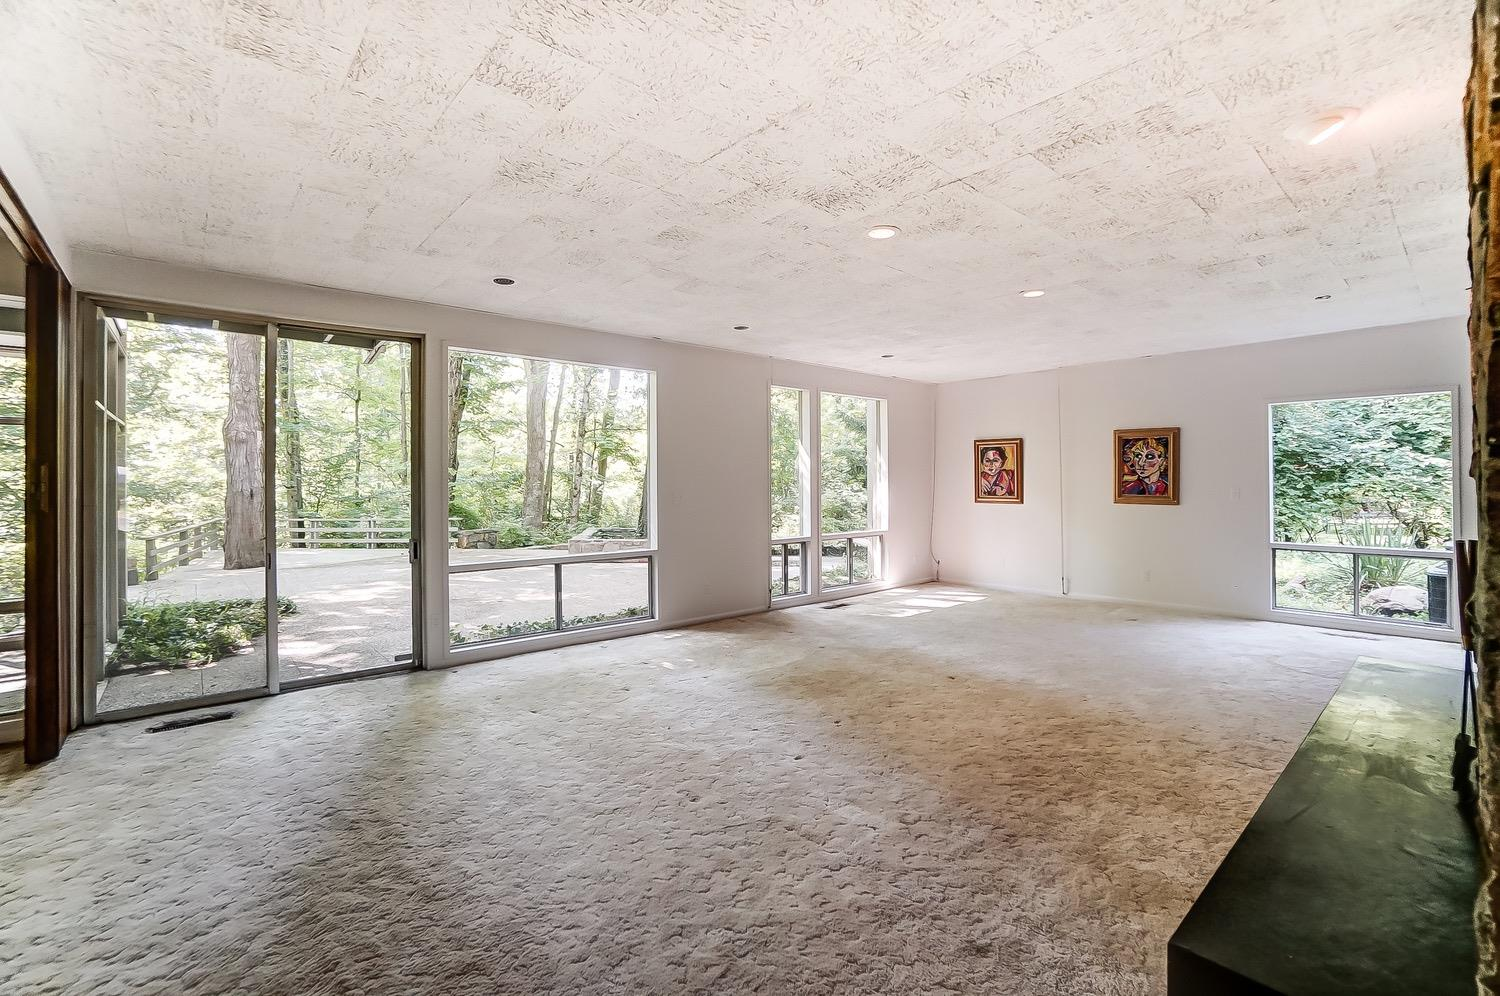 Light and bright living area with large expanses of glass and a sliding door to the rear patio/deck. The older wall-to-wall carpeting over a subfloor awaits your choice of new flooring.